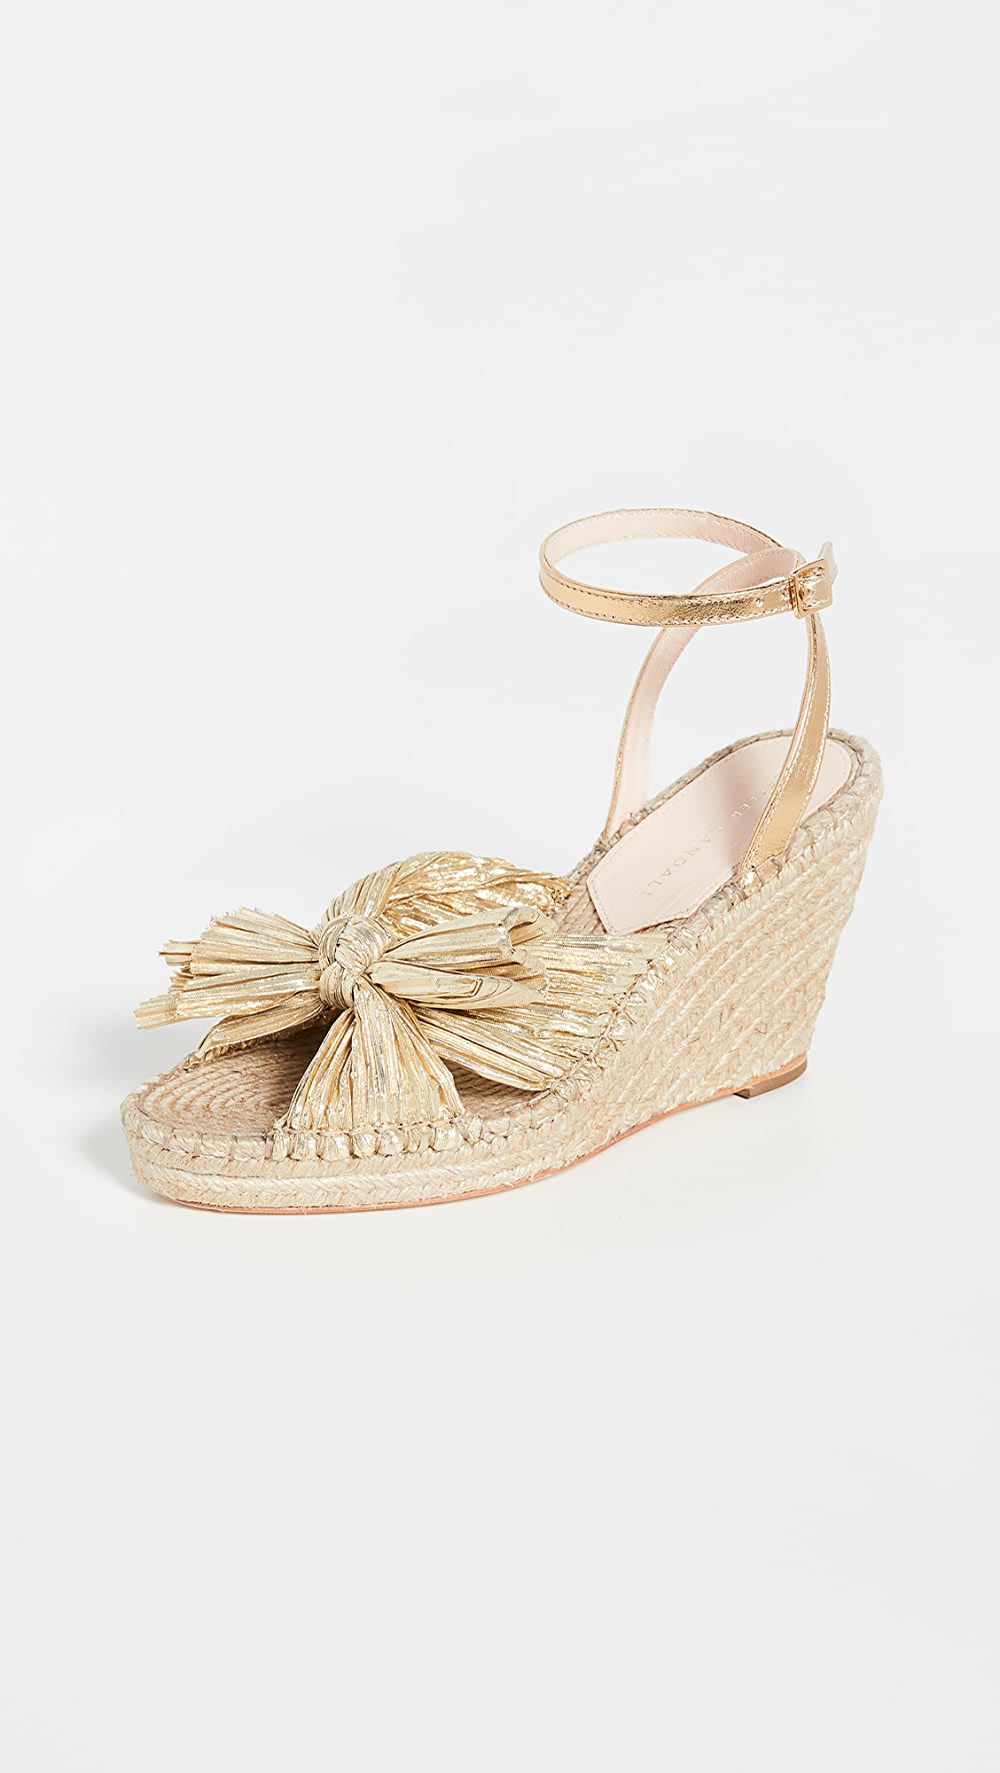 Reliable Loeffler Randall - Charley Pleated Knot Espadrille Wedge Attractive Fashion